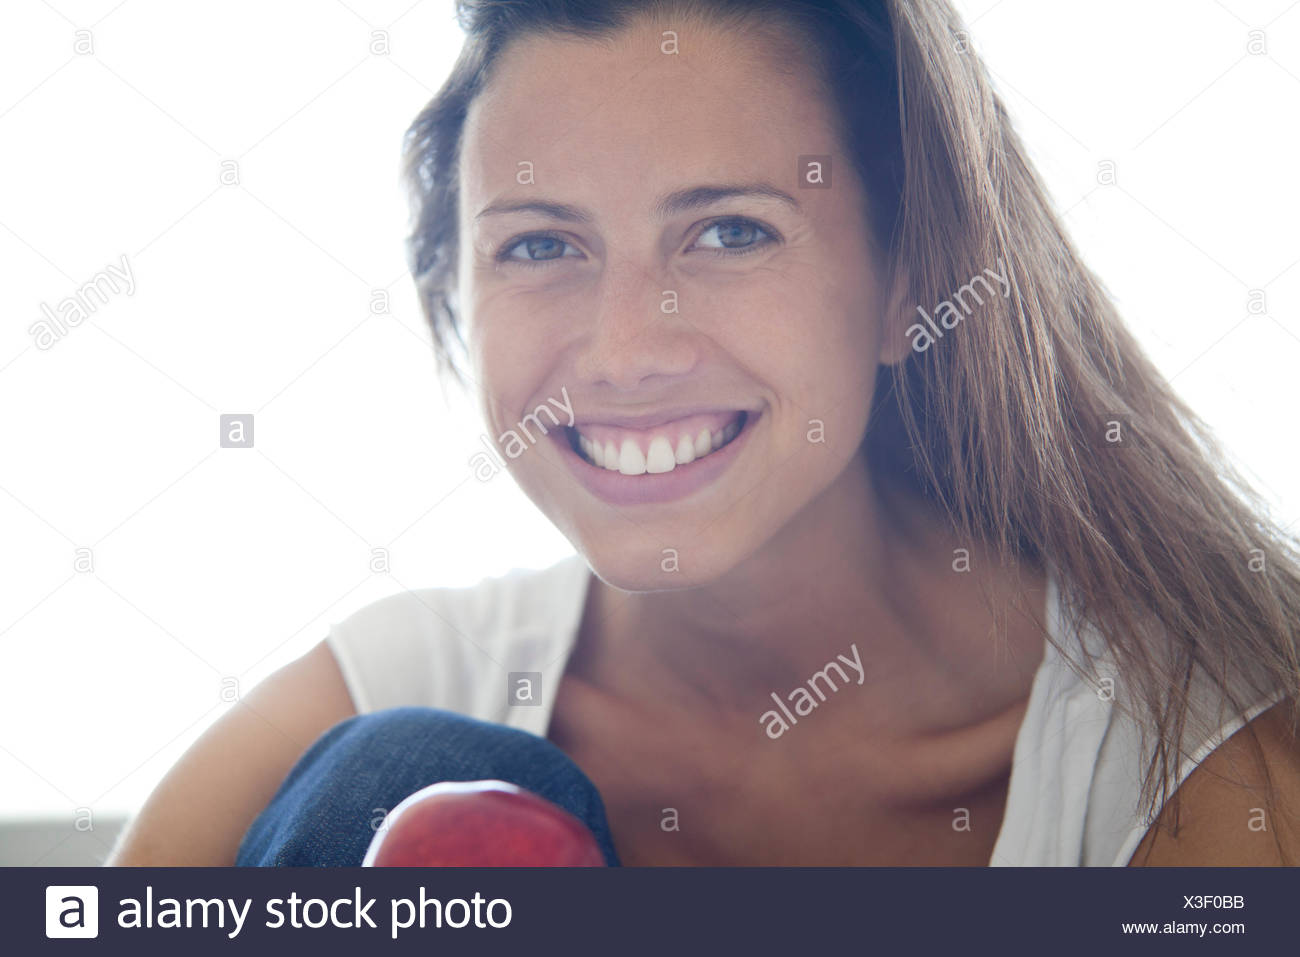 Woman smiling cheerfully, portrait - Stock Image